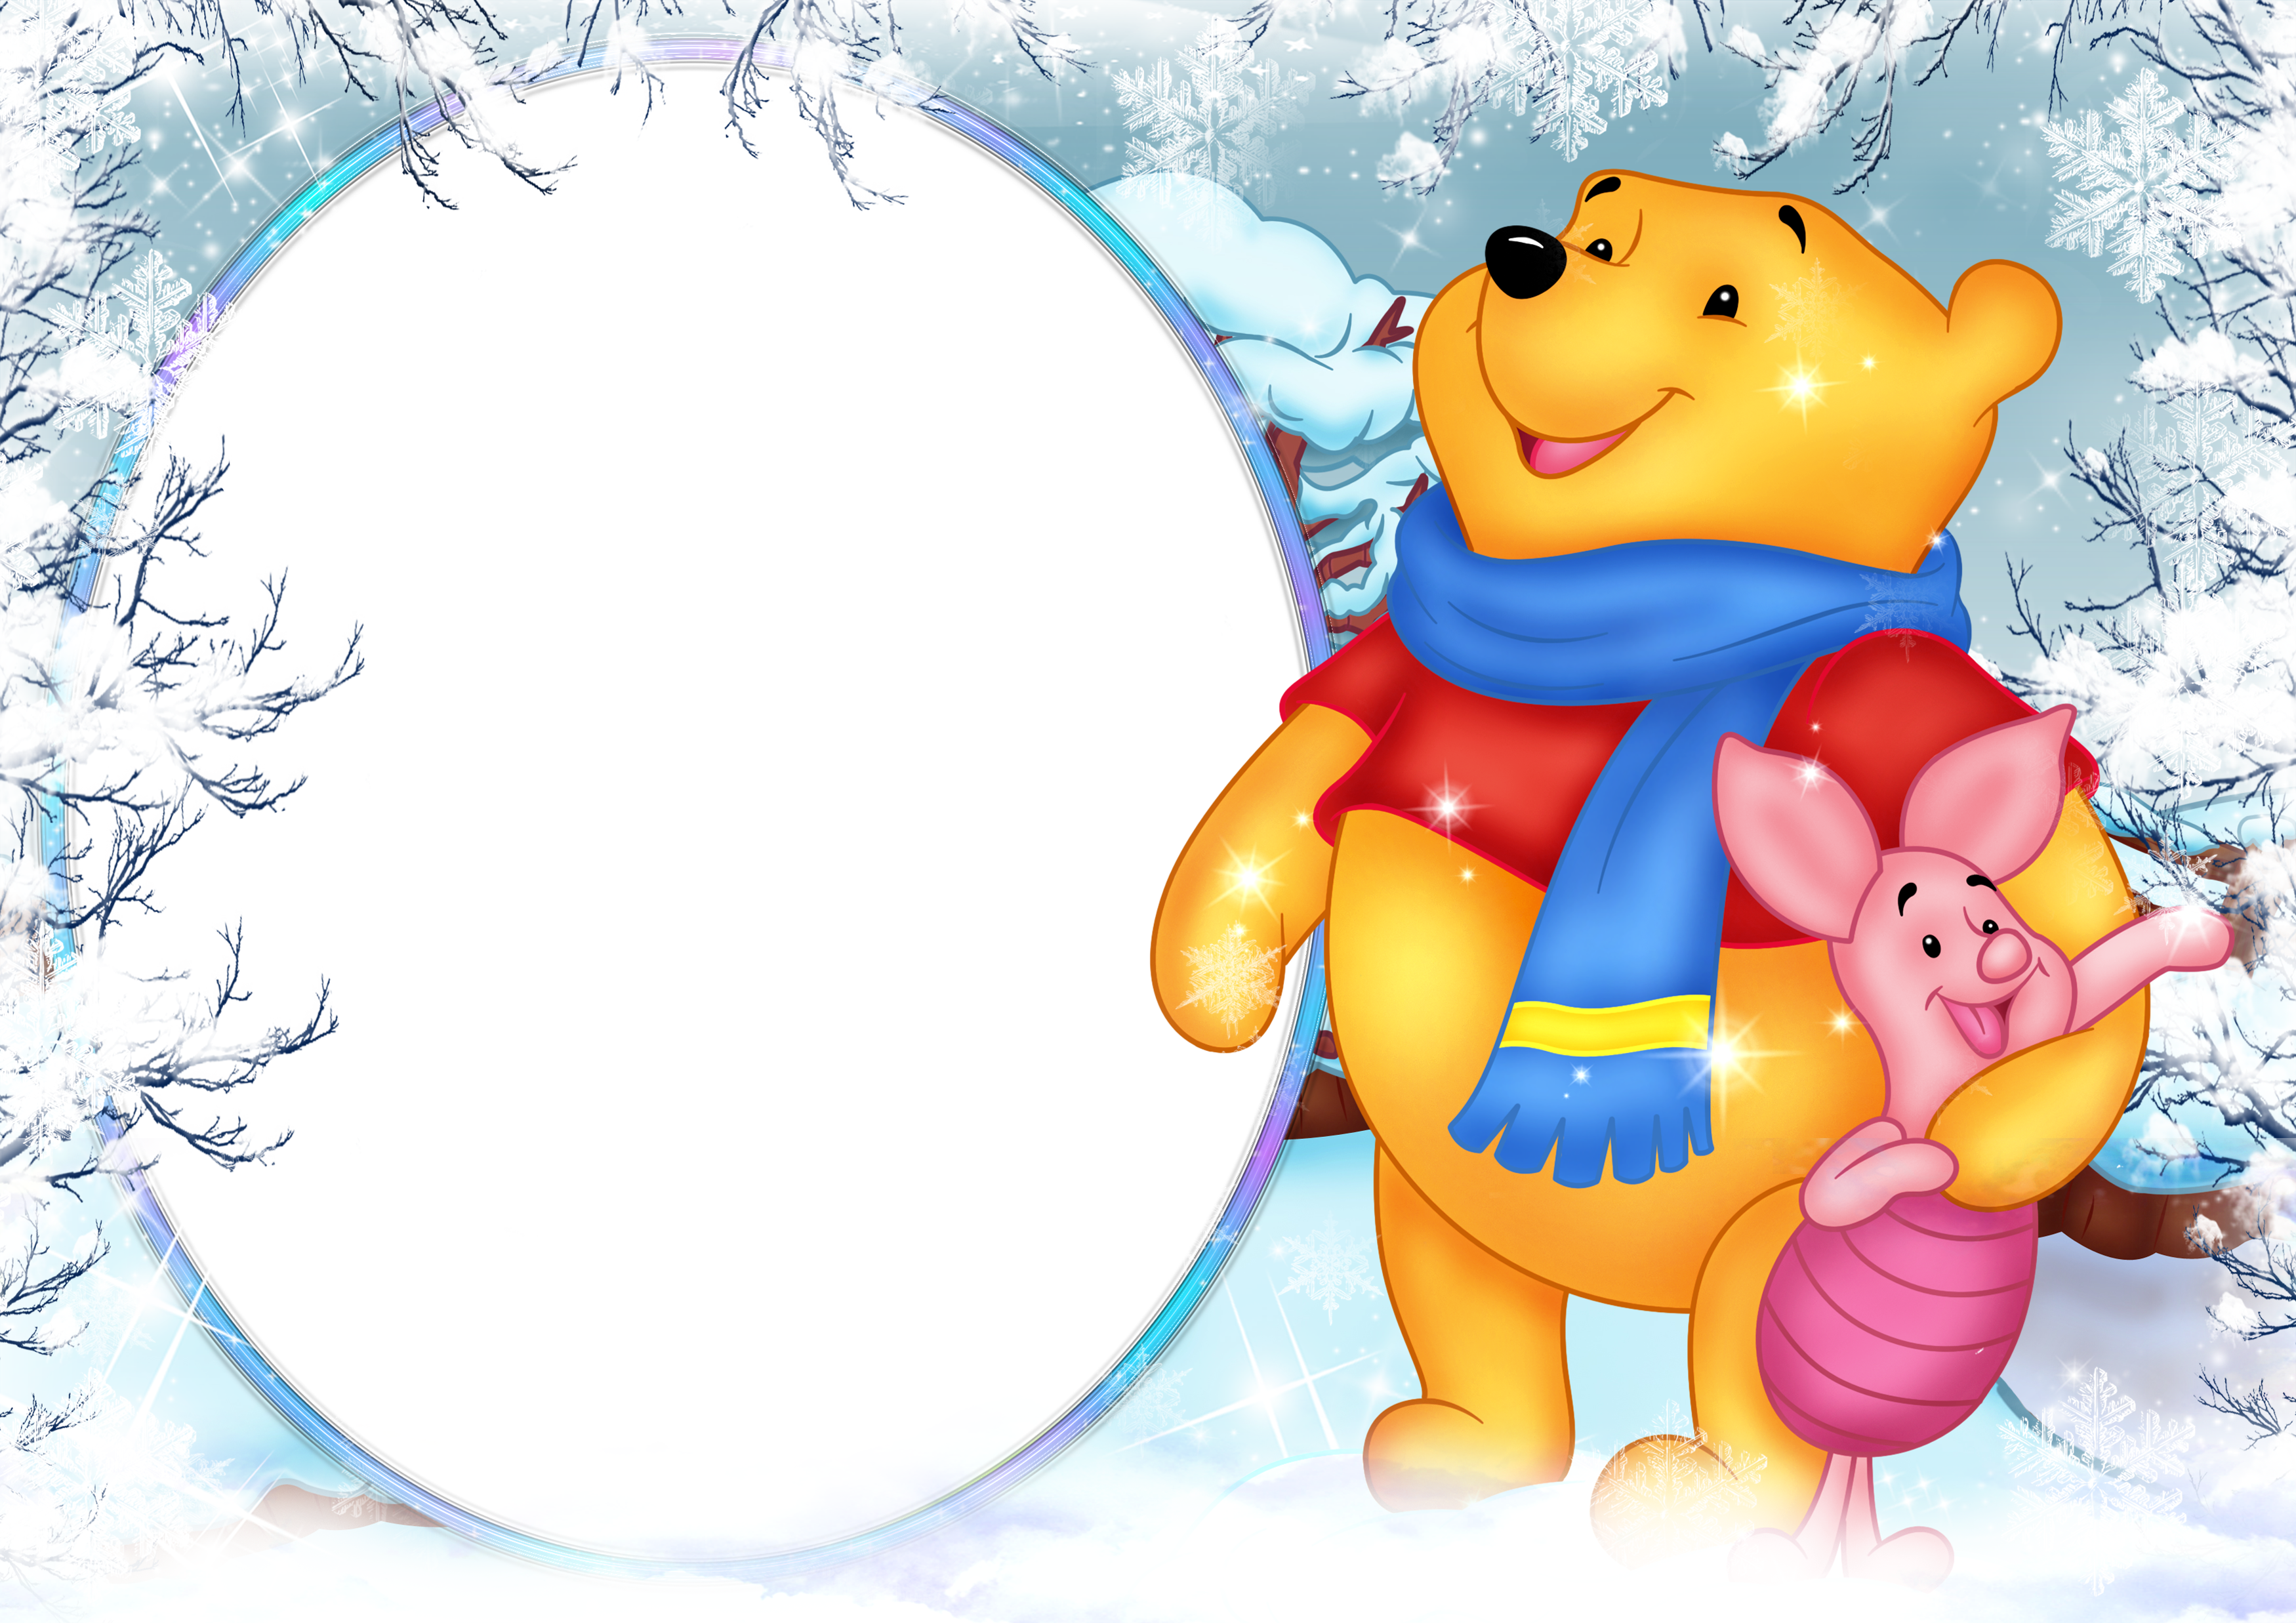 Winter holiday png. Winnie the pooh photo